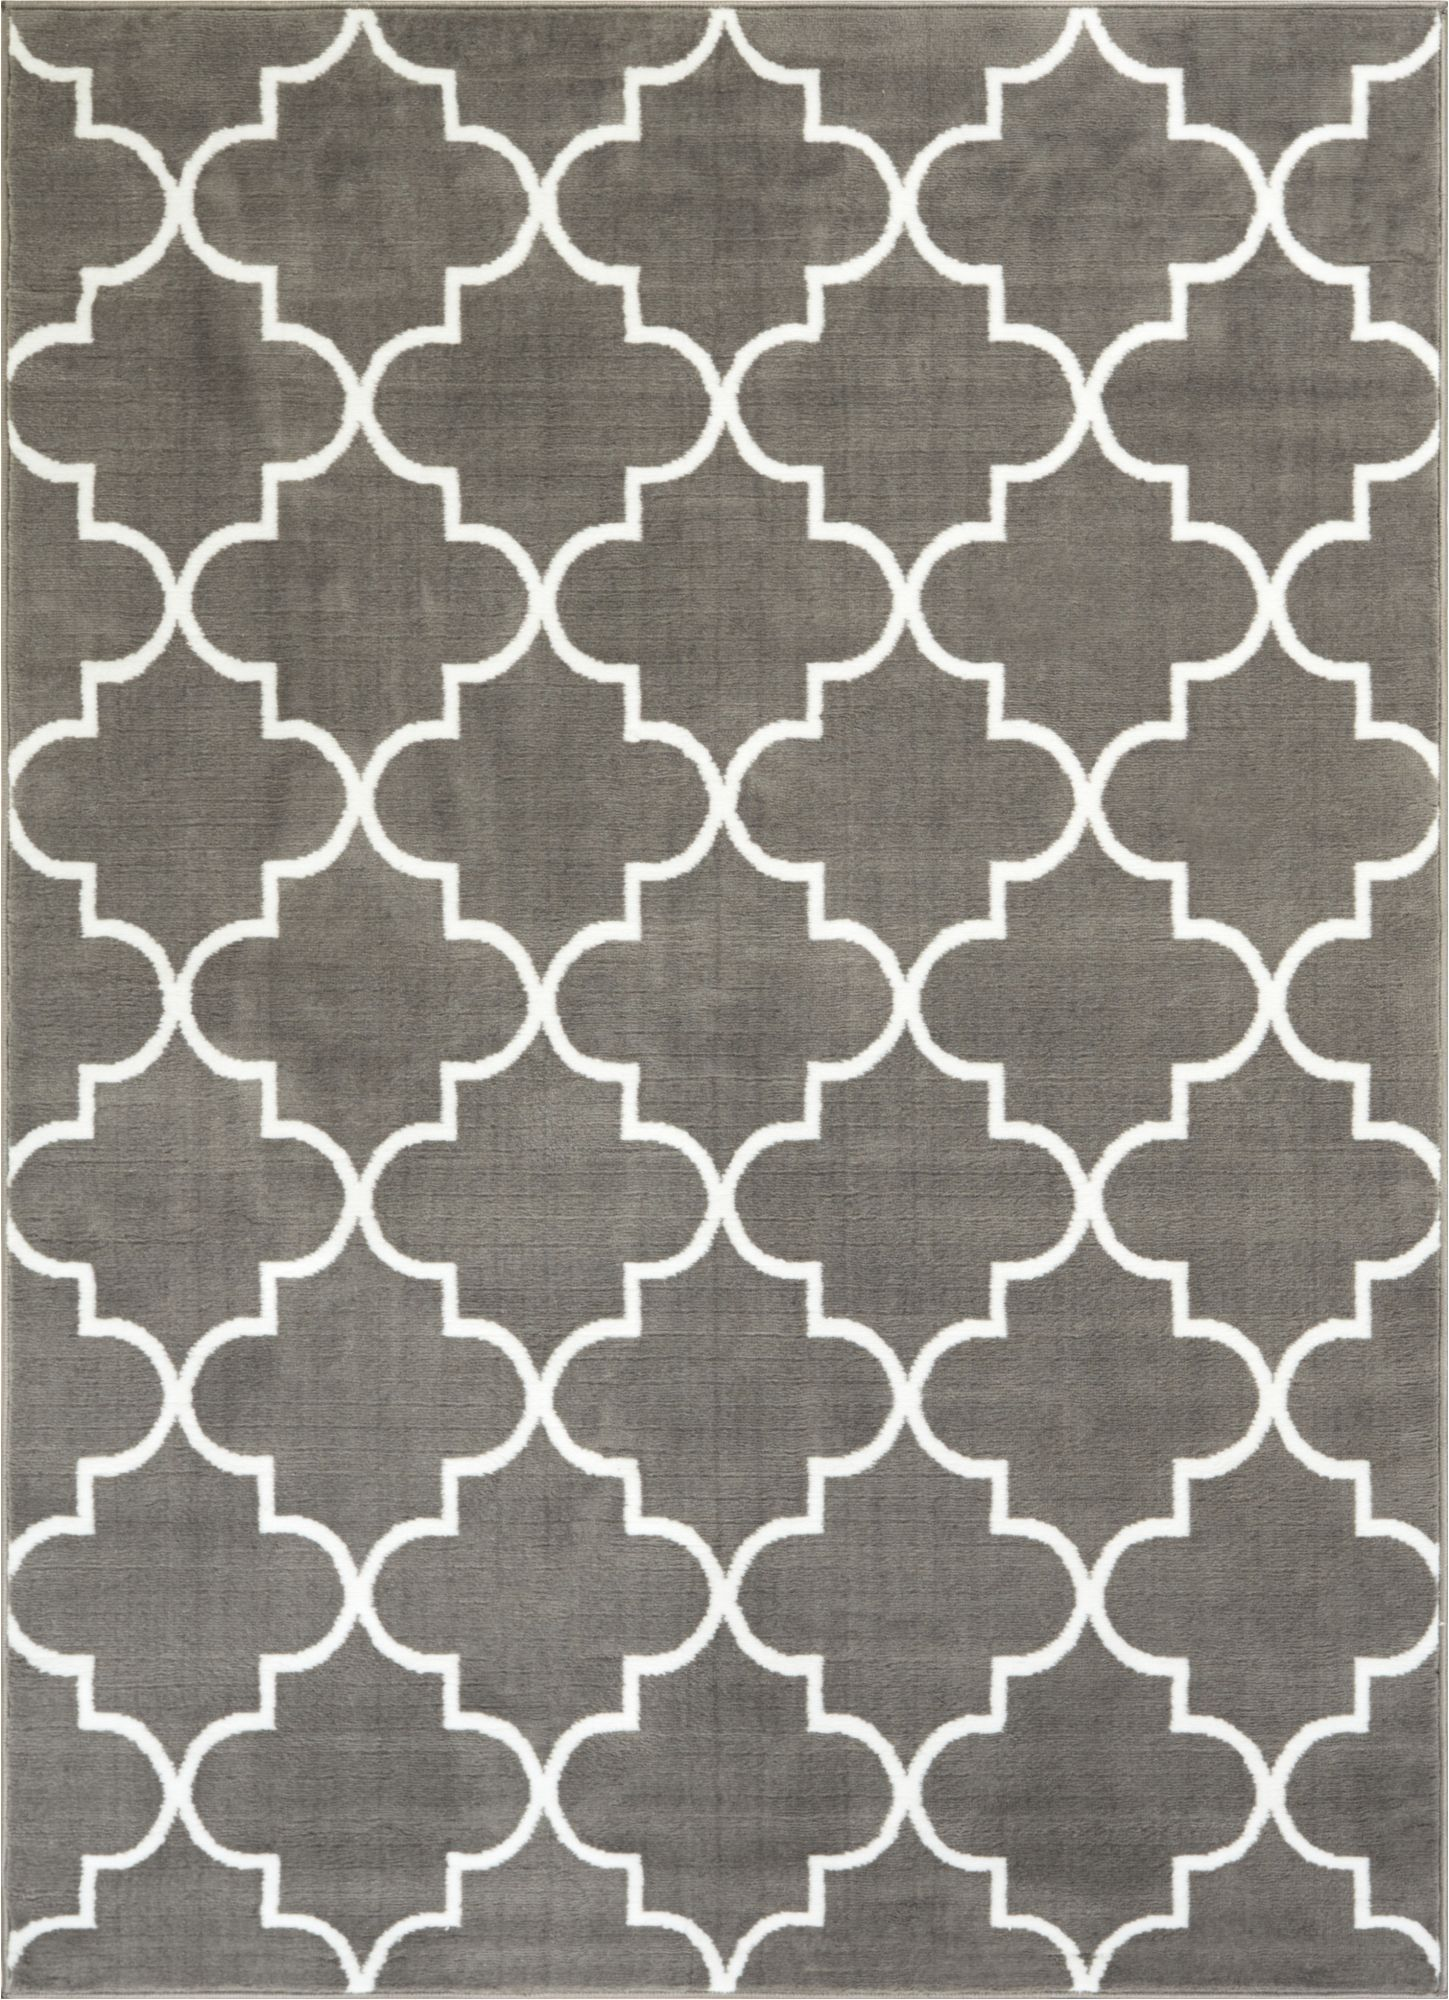 elleu0027s lattice grey modern rug GSNLXMR